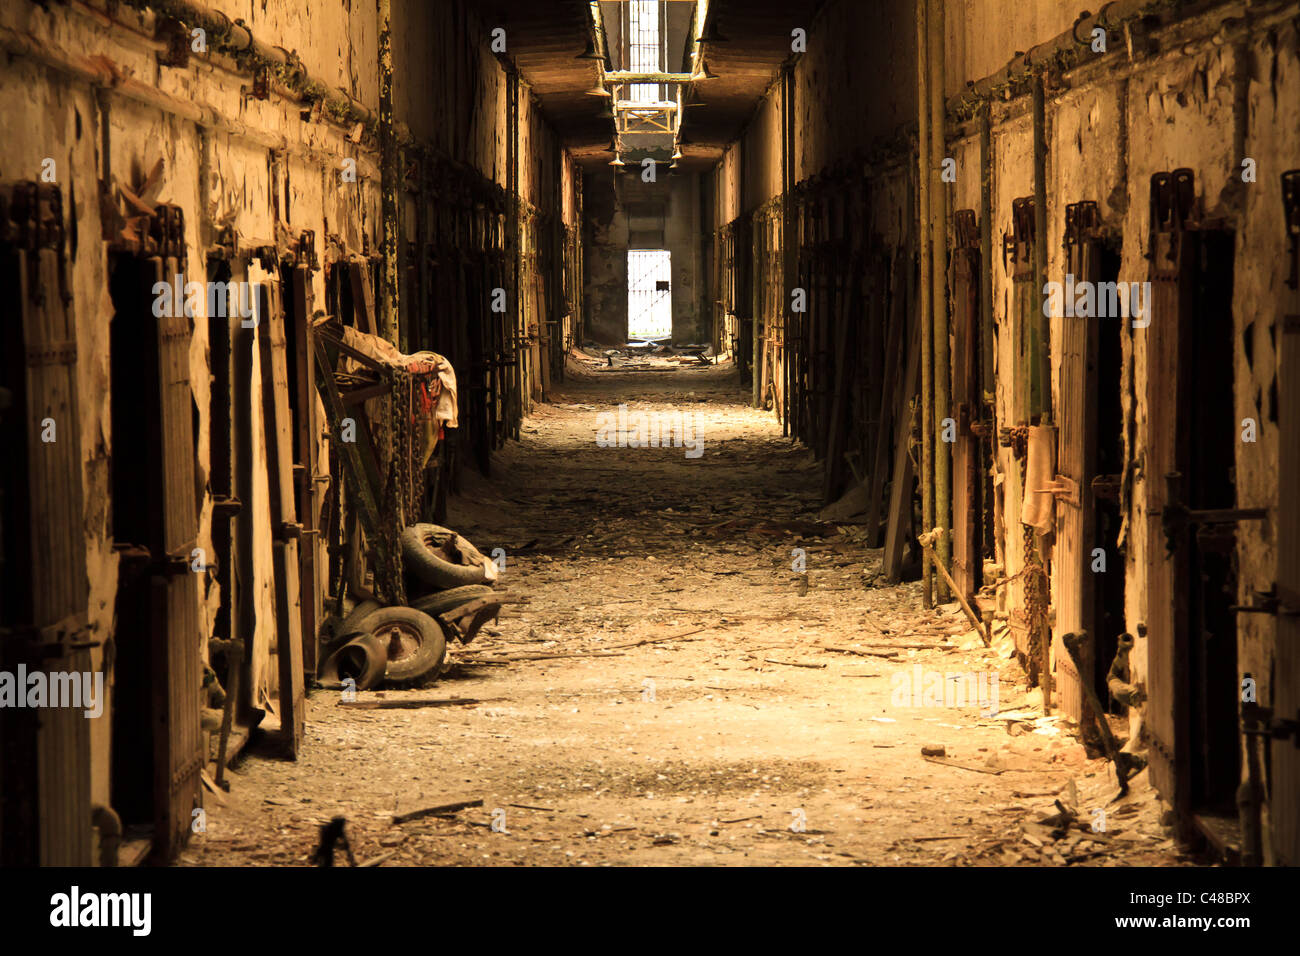 One of the crumbling cellblocks at Eastern State Penitentiary in Philadelphia, Pa. The prison was built in 1829. - Stock Image